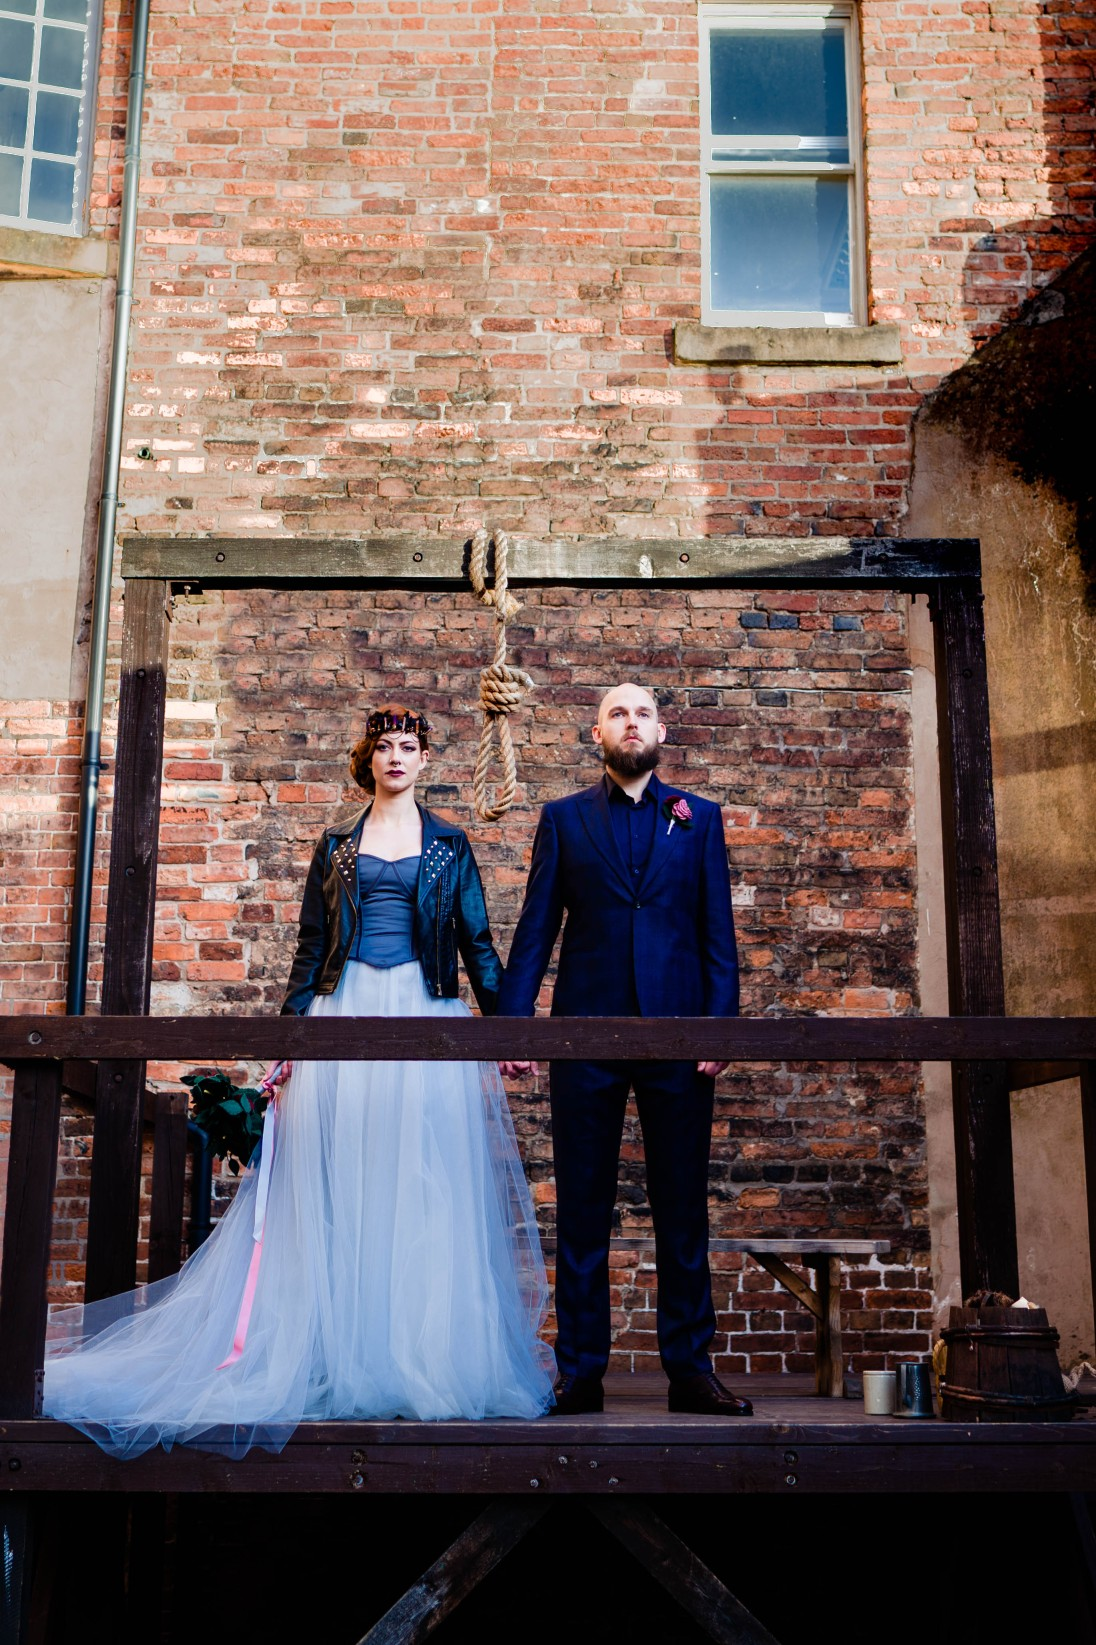 A gothic wedding - national justice museum wedding - alternative wedding - Vicki Clayson Photography (5)